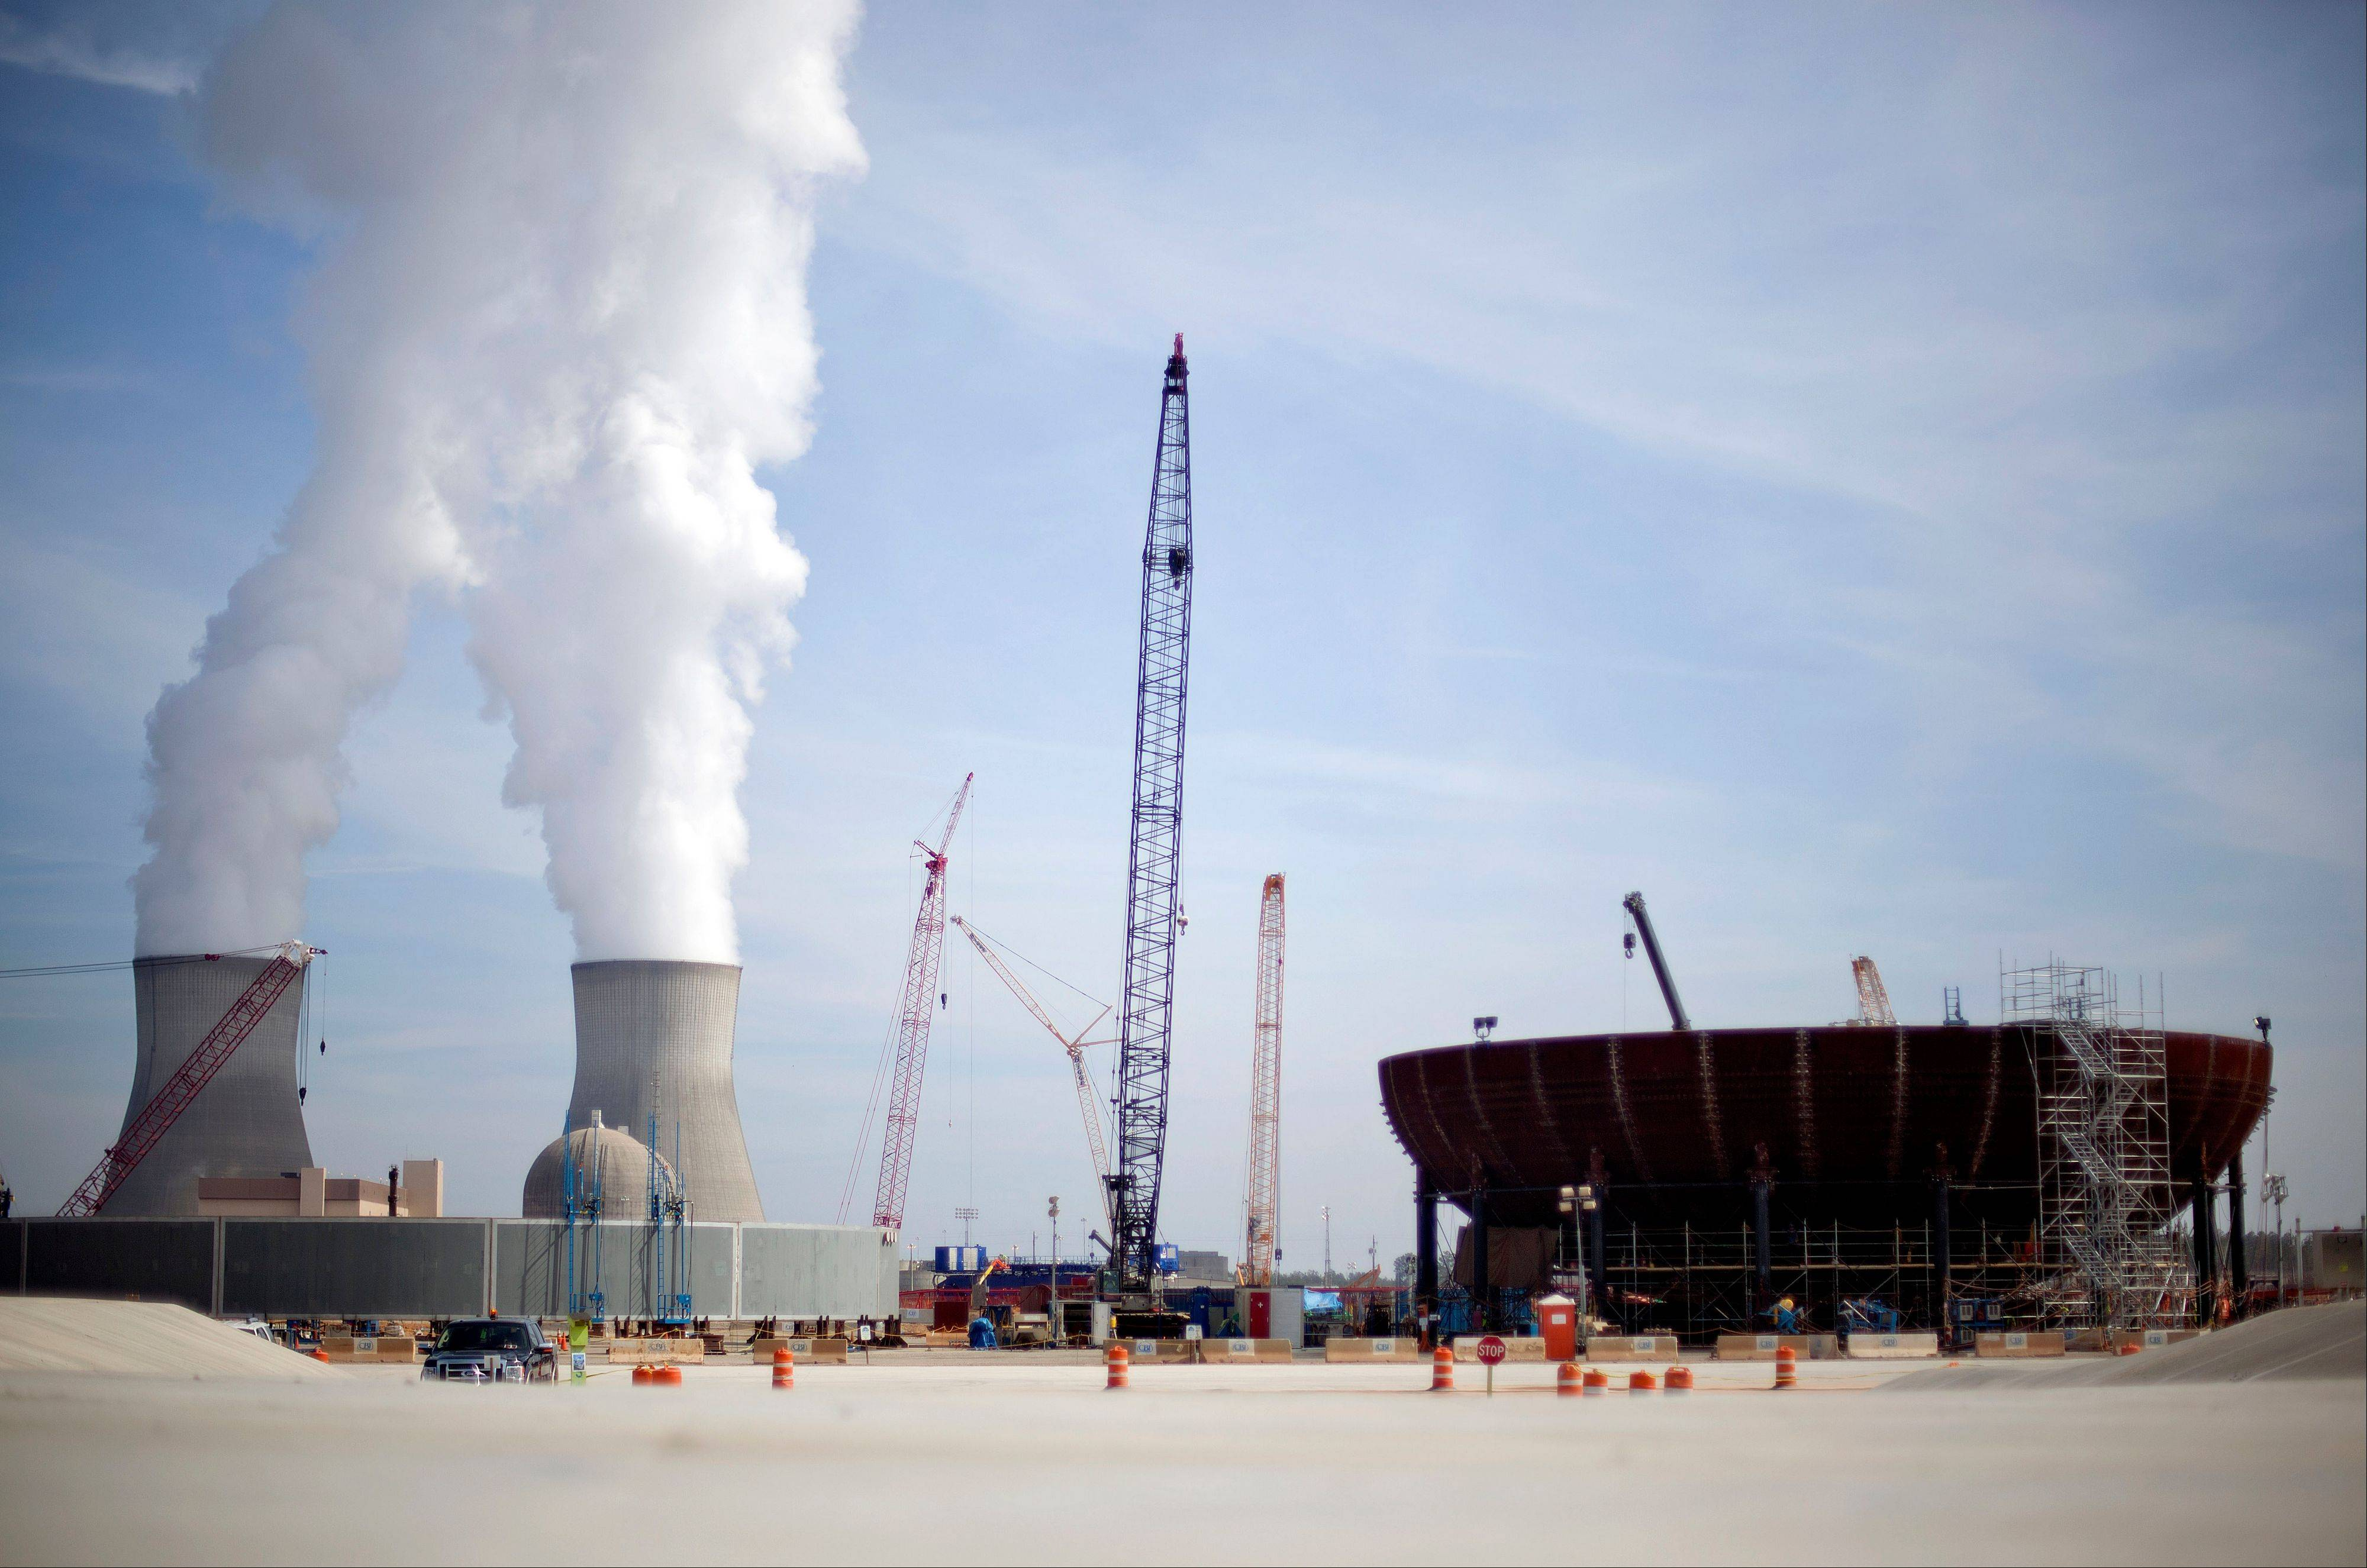 Cooling towers for units 1 and 2 are seen at left as the new reactor vessel bottom head for Unit 3 stands under construction at right at the Vogtle nuclear power plant in Waynesboro, Ga., on Feb. 15. Vogtle, initially estimated to cost $14 billion, has run into more than $800 million in extra charges related to licensing delays. A state monitor has said bluntly that co-owner Southern Co. can't stick to its budget. The plant, whose first reactor was supposed to be operational by April 2016, is now delayed seven months.